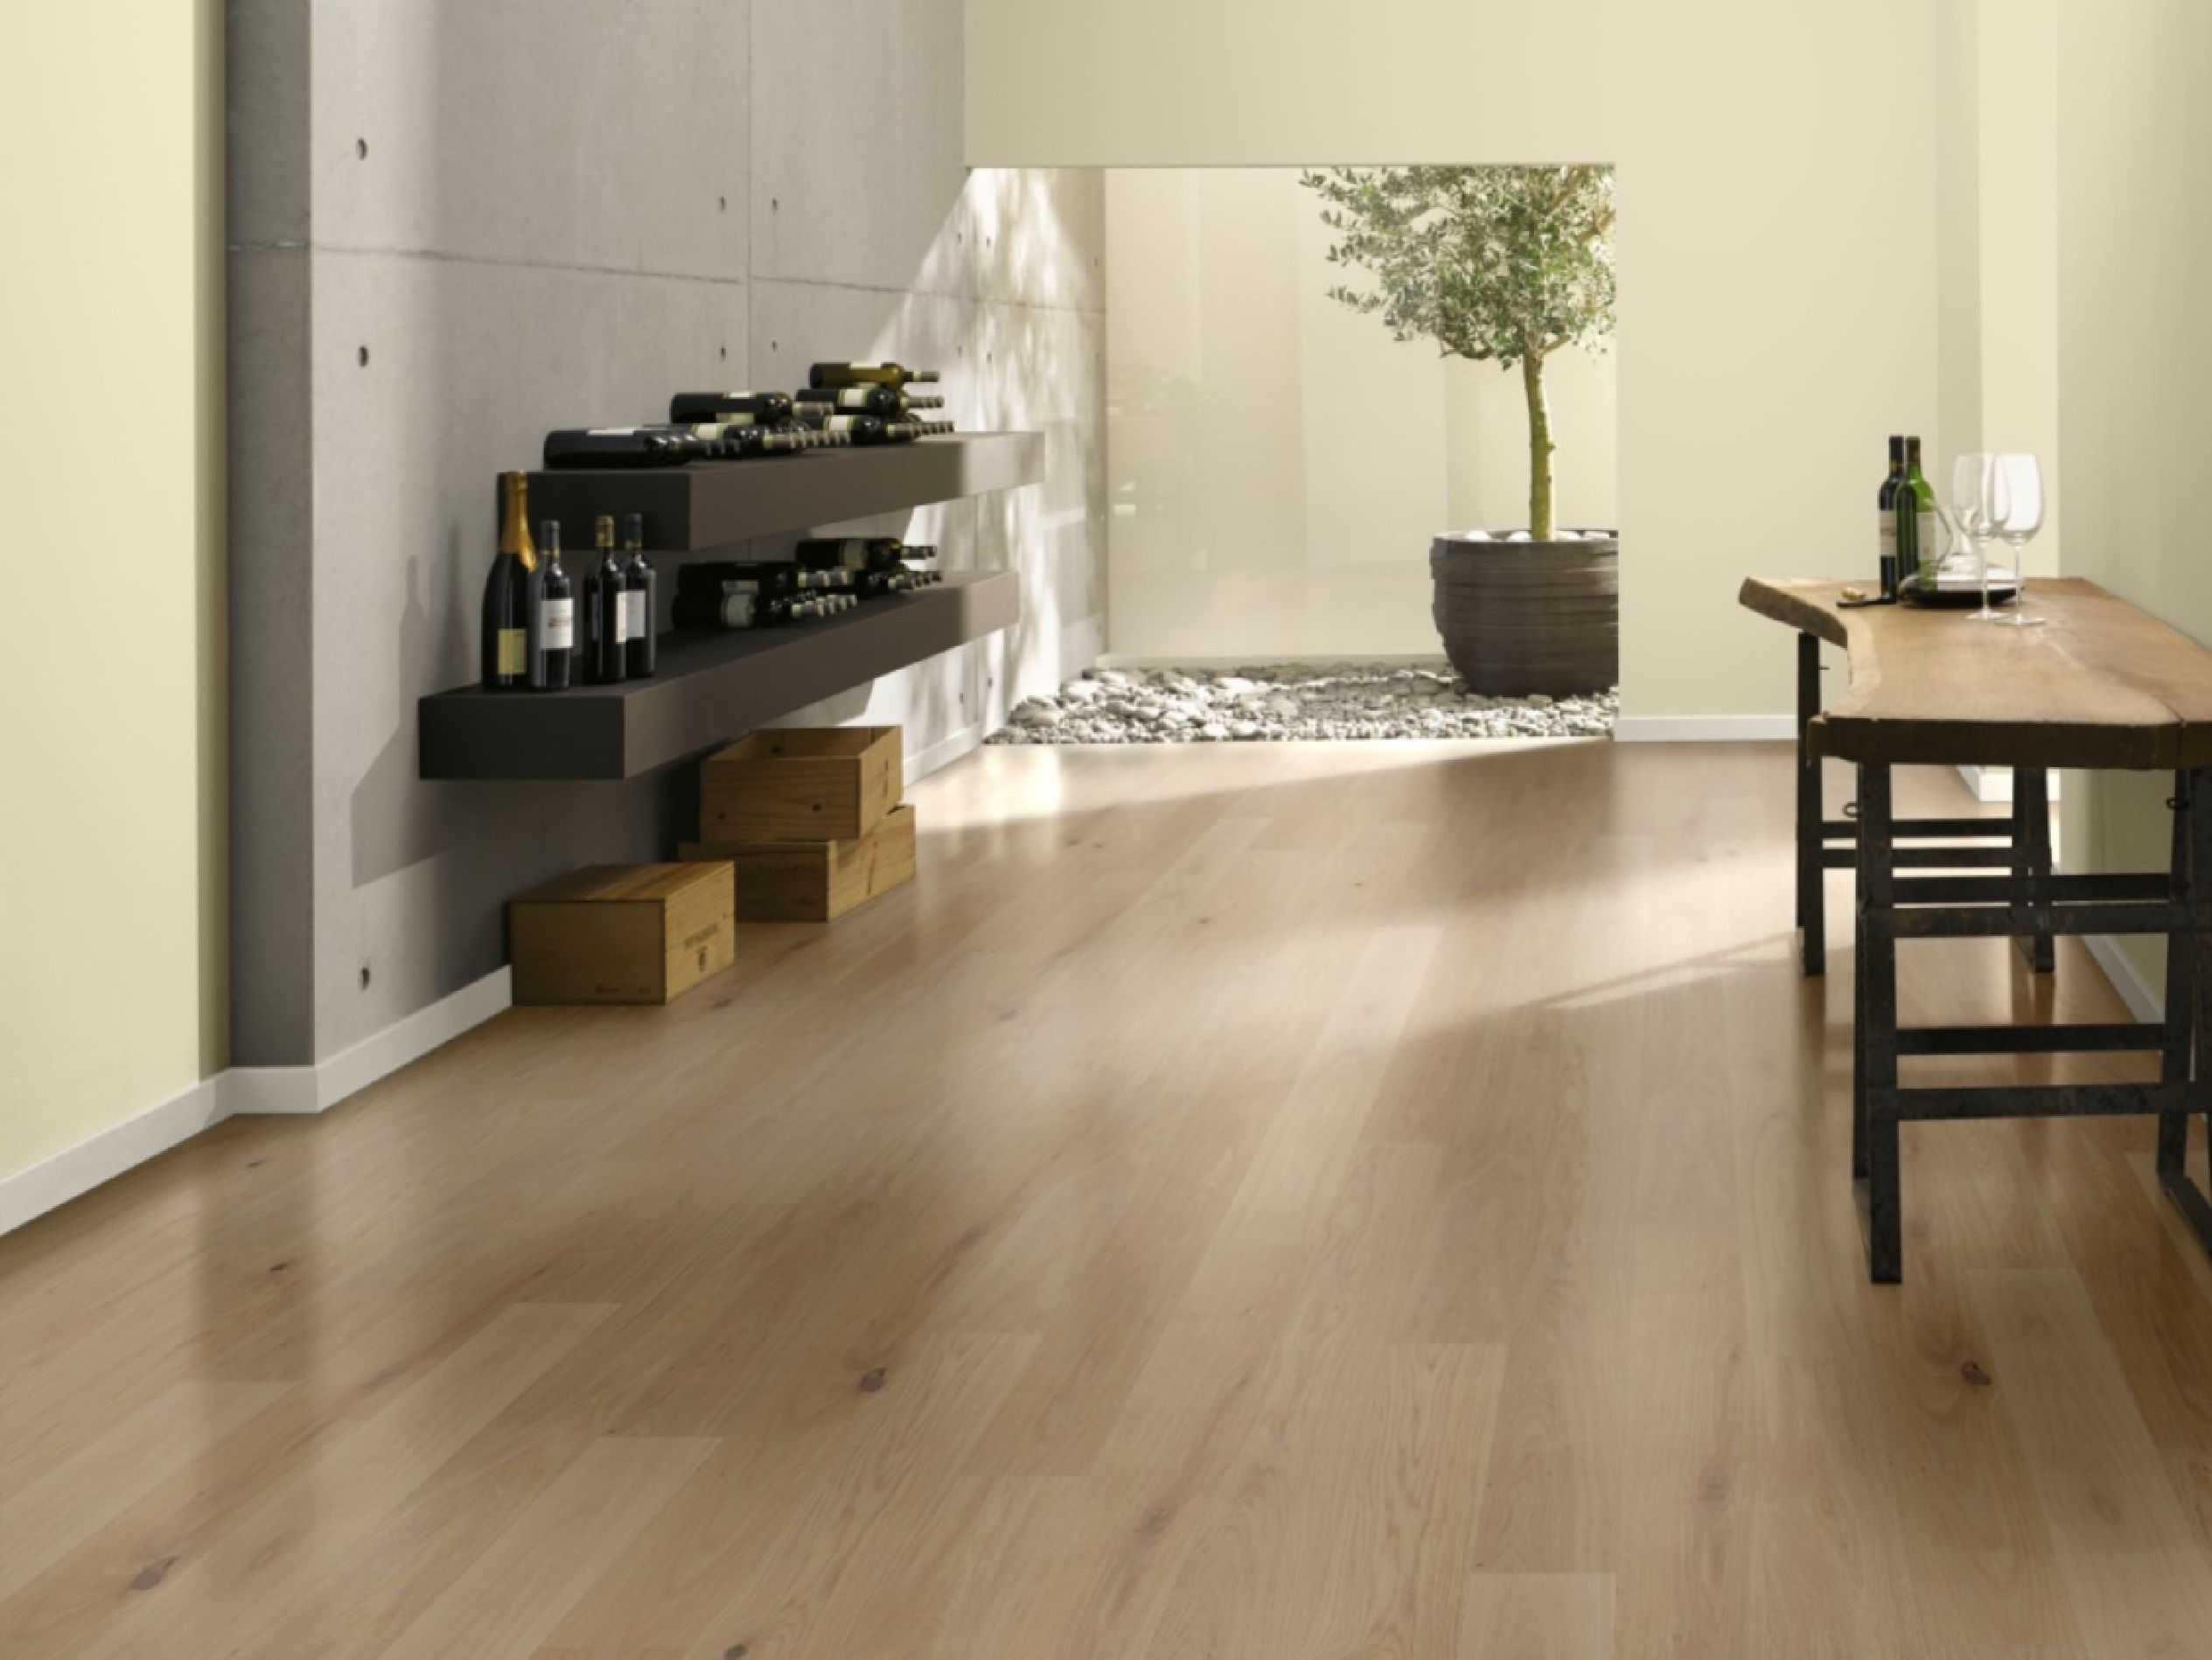 Trendtime4 laminate floorings by parador are hard wearing and trendtime4 laminate floorings by parador are hard wearing and suitable for dailygadgetfo Choice Image